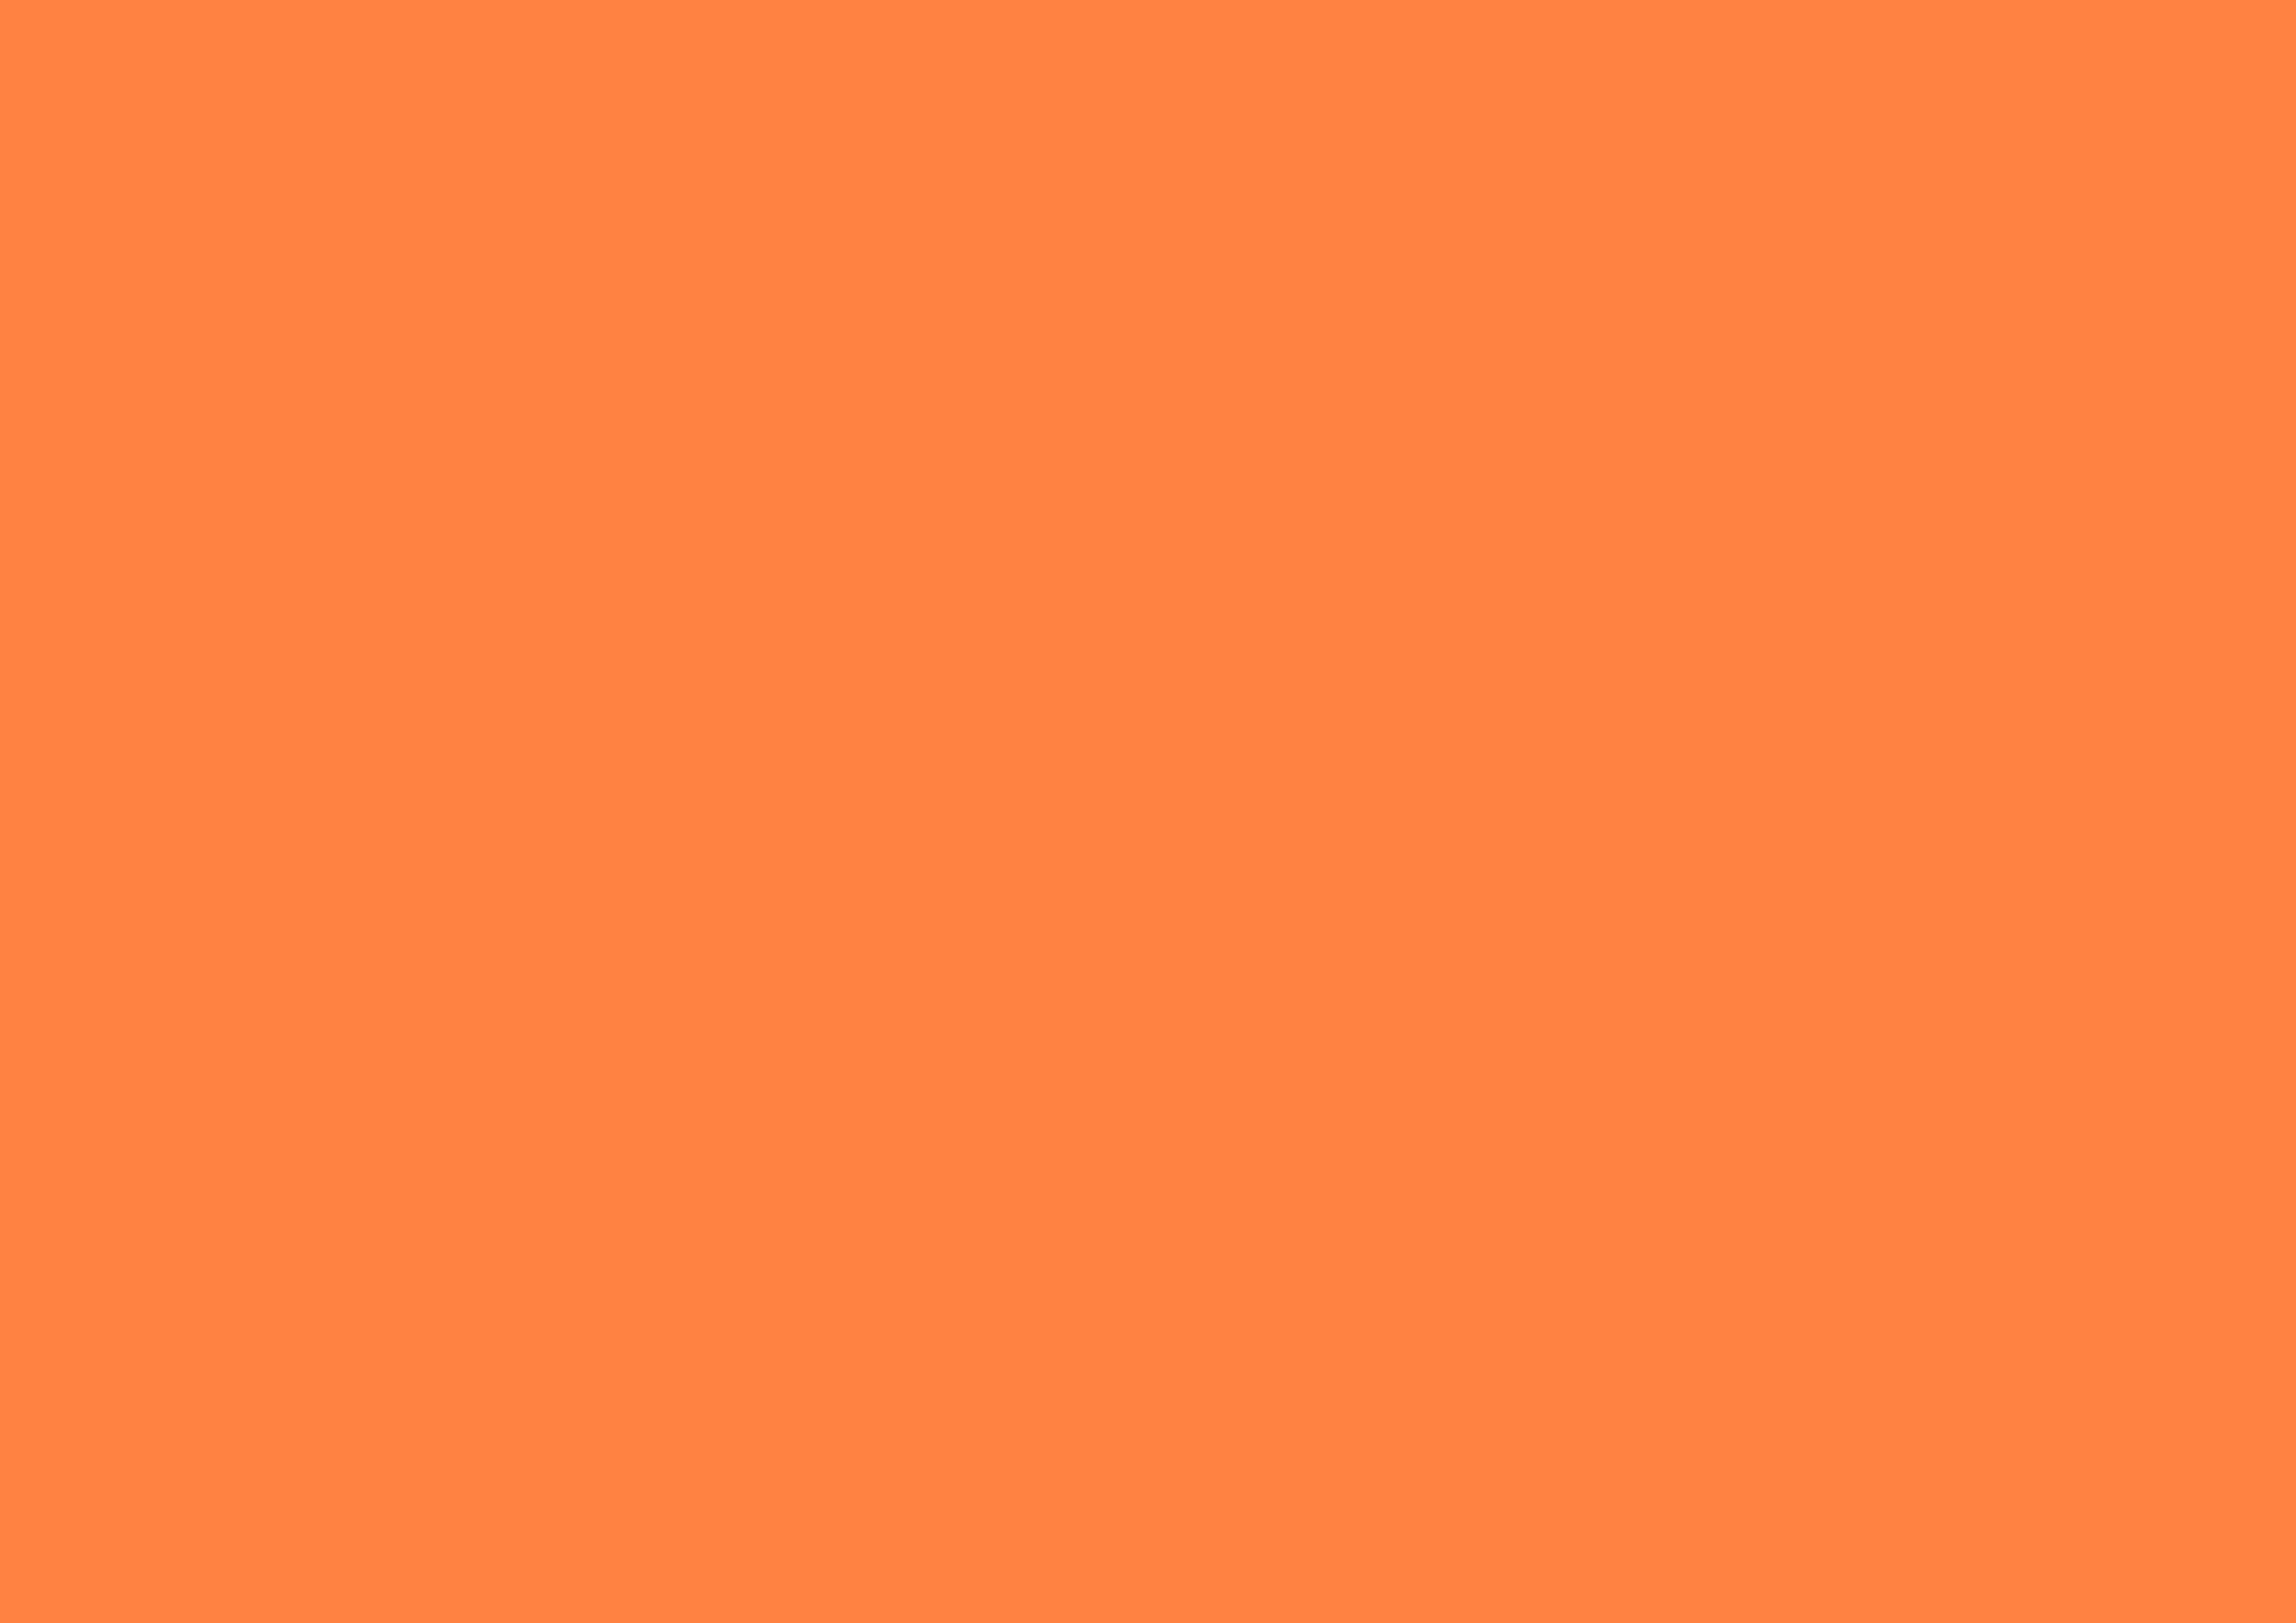 3508x2480 Mango Tango Solid Color Background